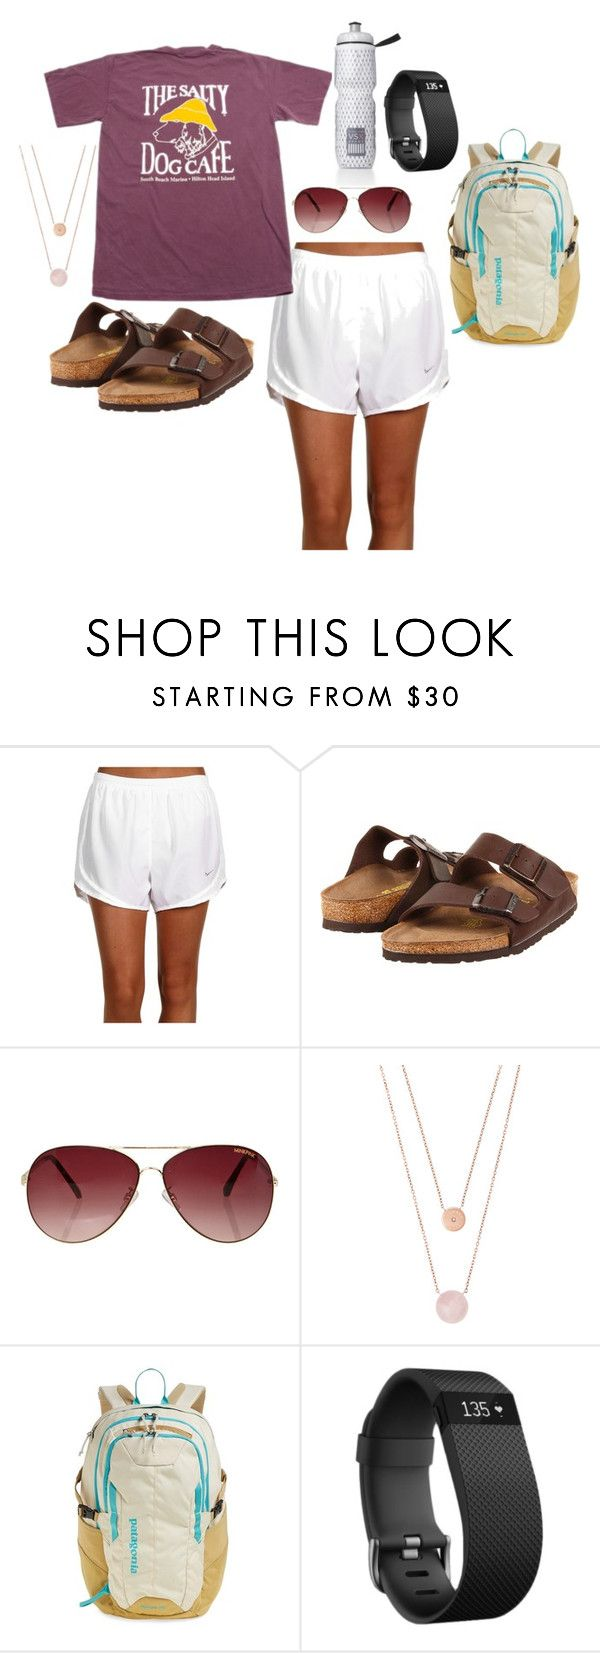 """""""campus casual"""" by morganmcghee on Polyvore featuring NIKE, Birkenstock, MINKPINK, Michael Kors, Victoria's Secret, Patagonia and Fitbit"""